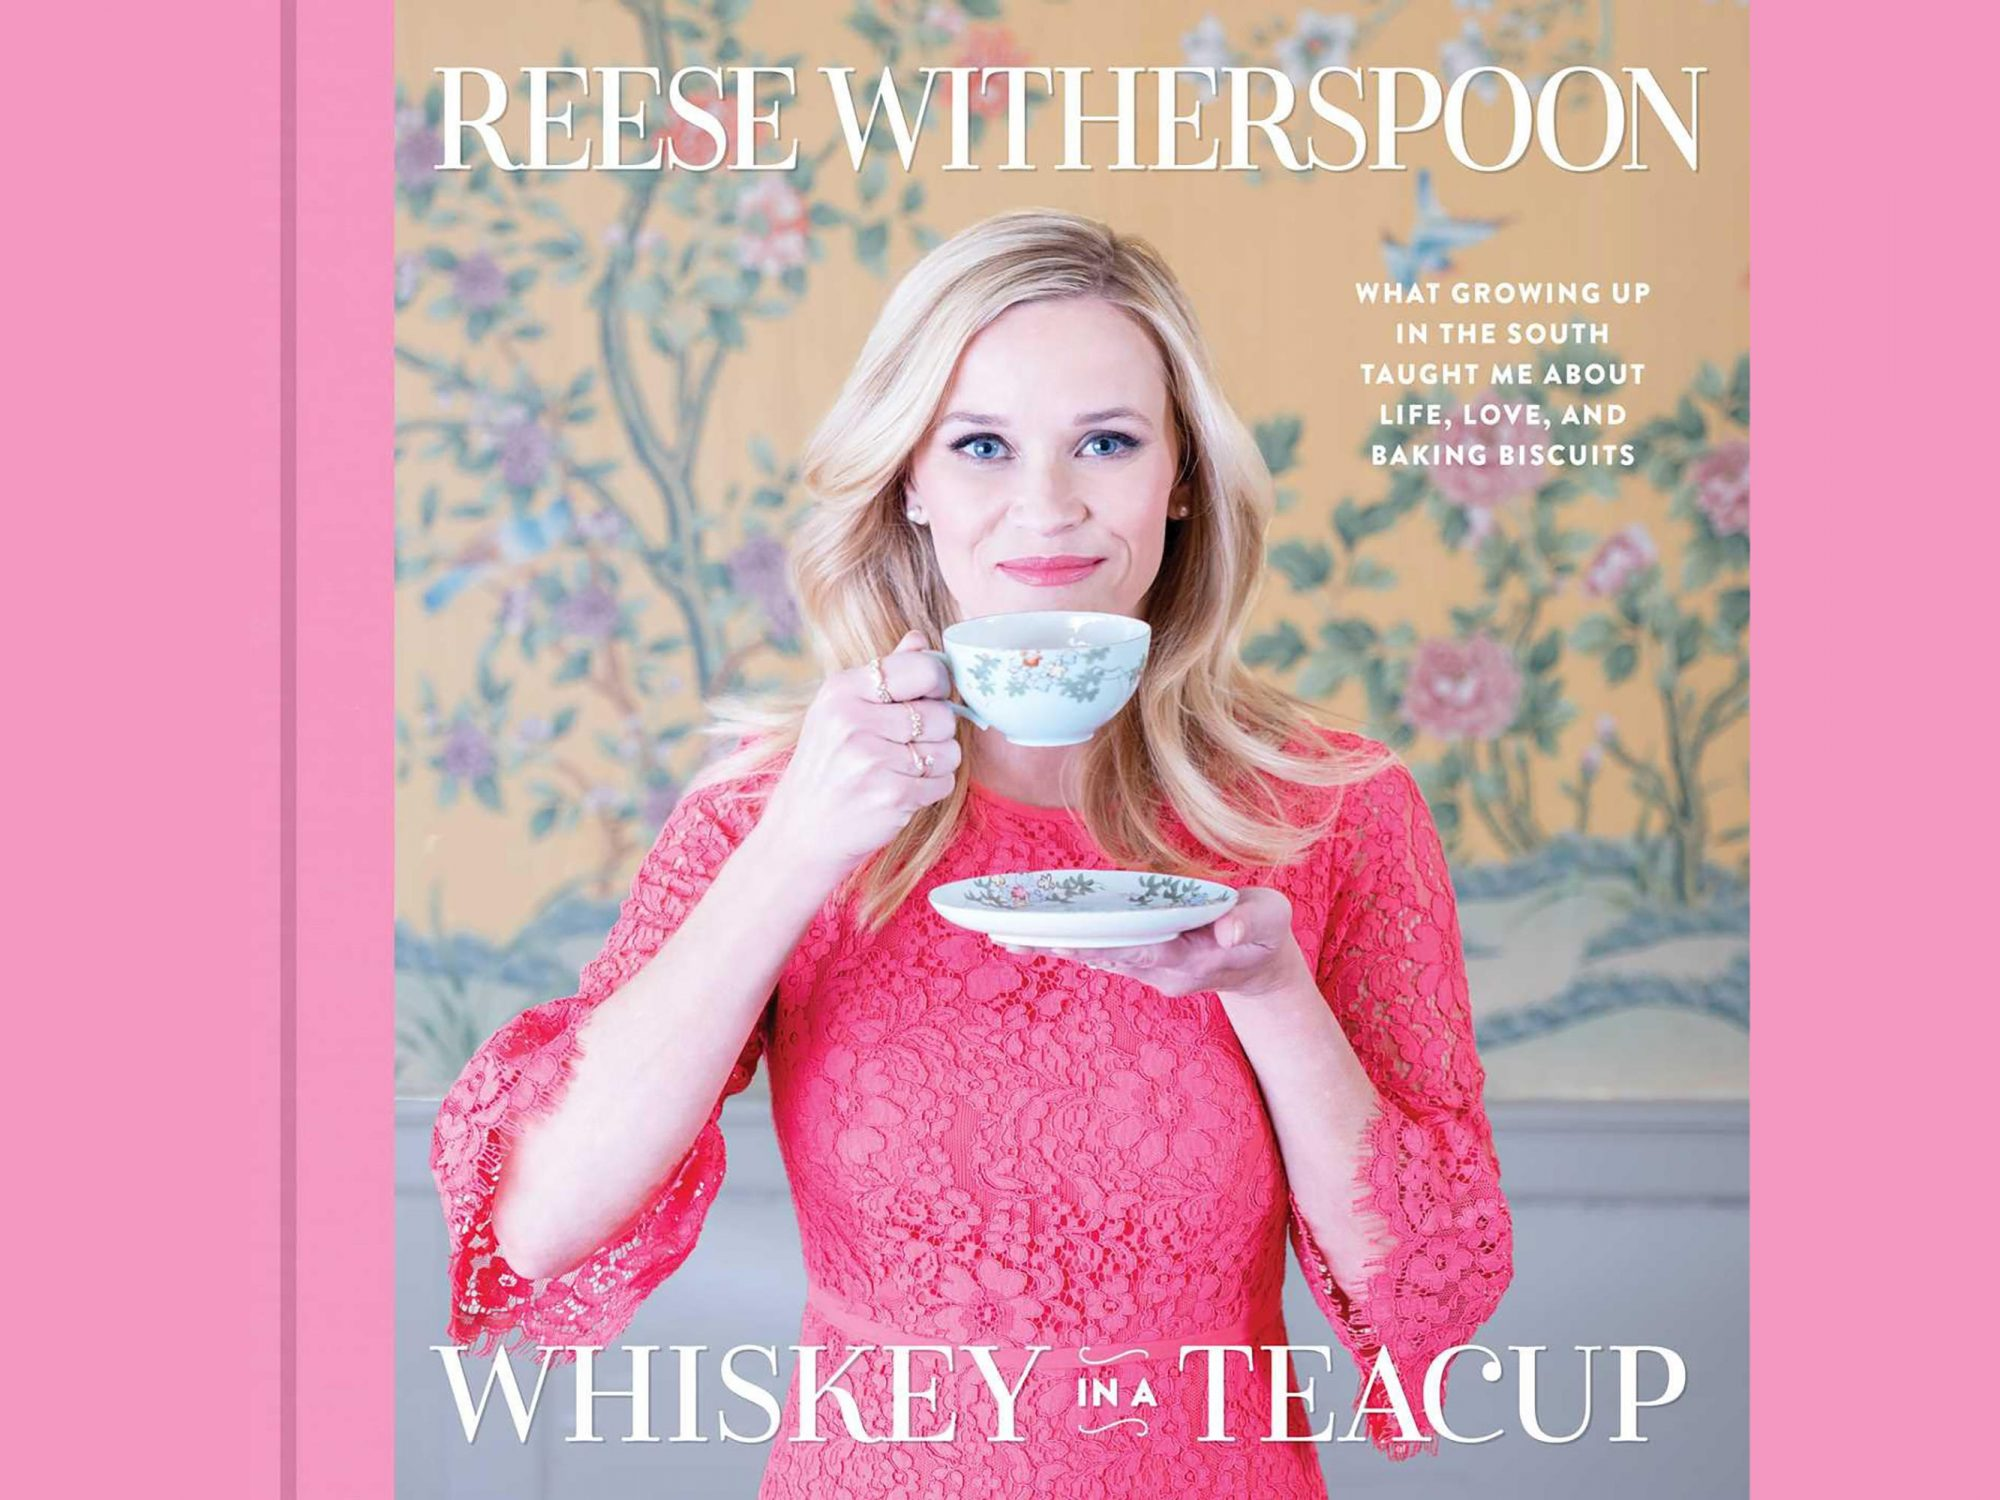 Reese Witherspoon Just Showed Us That Epic Food Fails Can Happen to Anyone 1810w-Reese-Witherspoon-Book